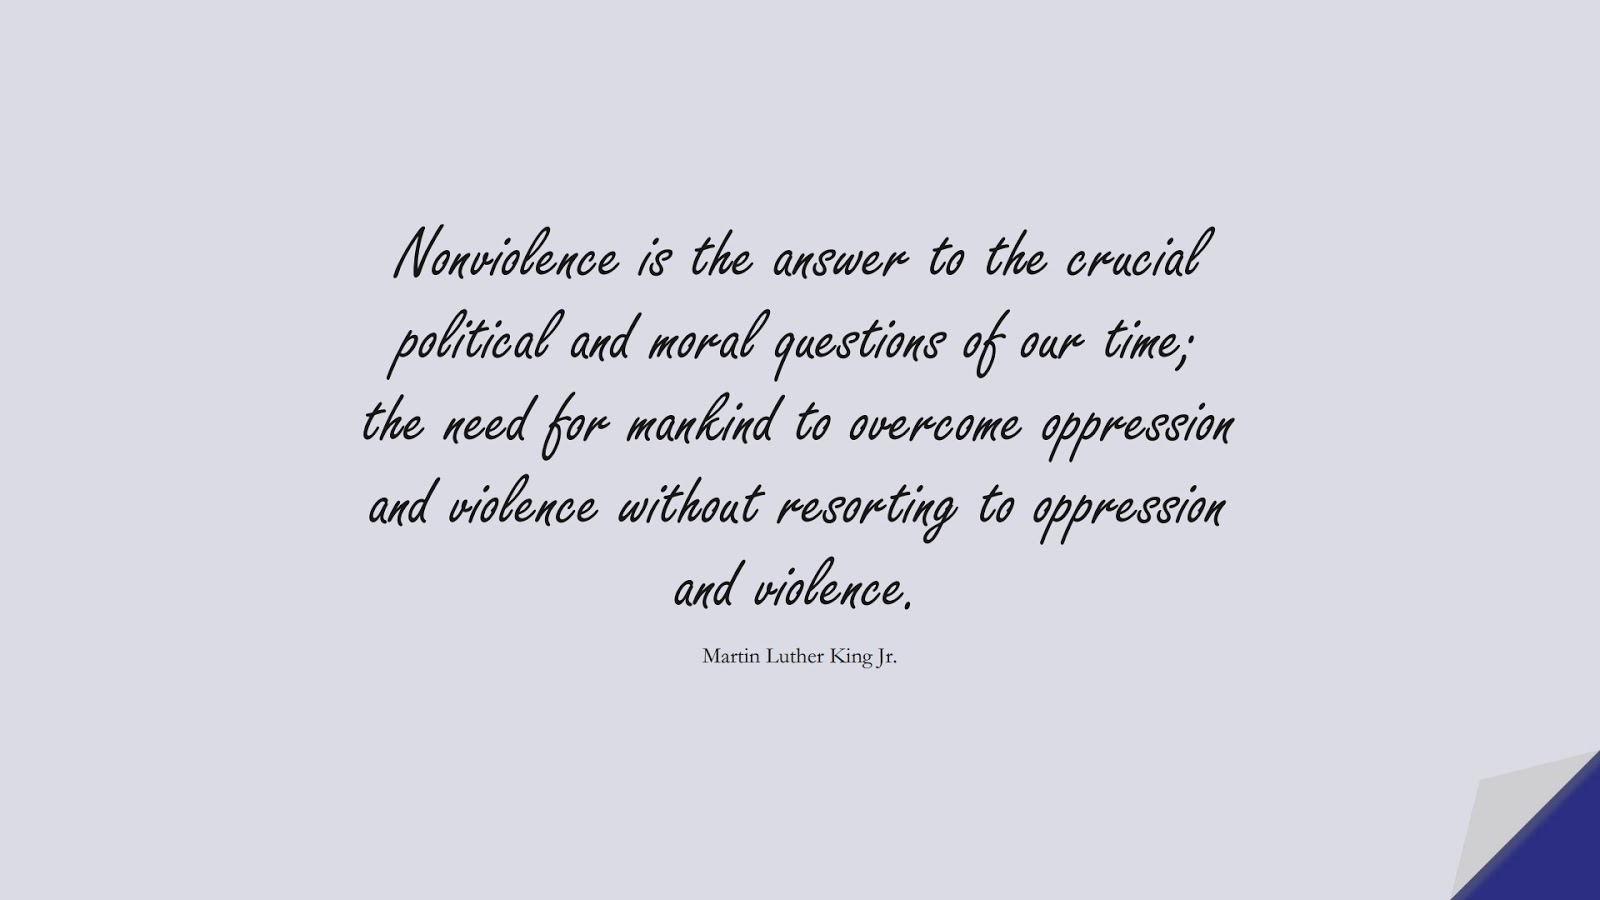 Nonviolence is the answer to the crucial political and moral questions of our time; the need for mankind to overcome oppression and violence without resorting to oppression and violence. (Martin Luther King Jr.);  #MartinLutherKingJrQuotes